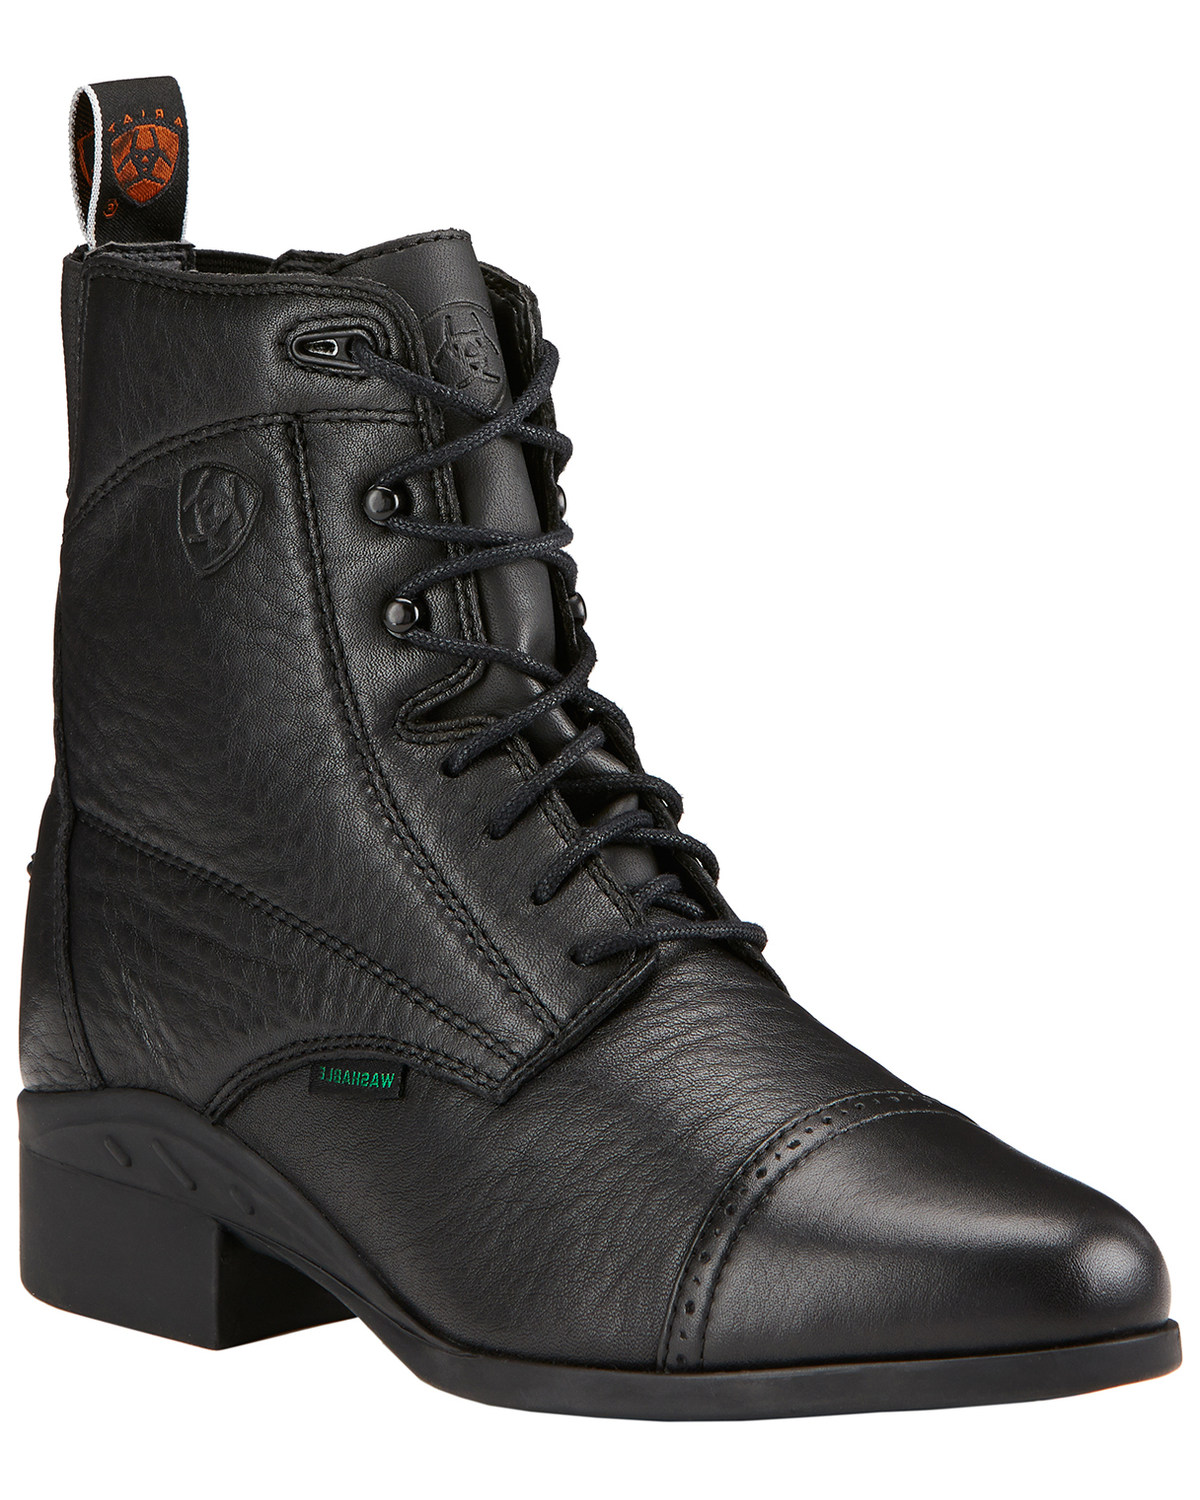 Ariat Women S Heritage Breeze Lace Up Paddock Boots Boot